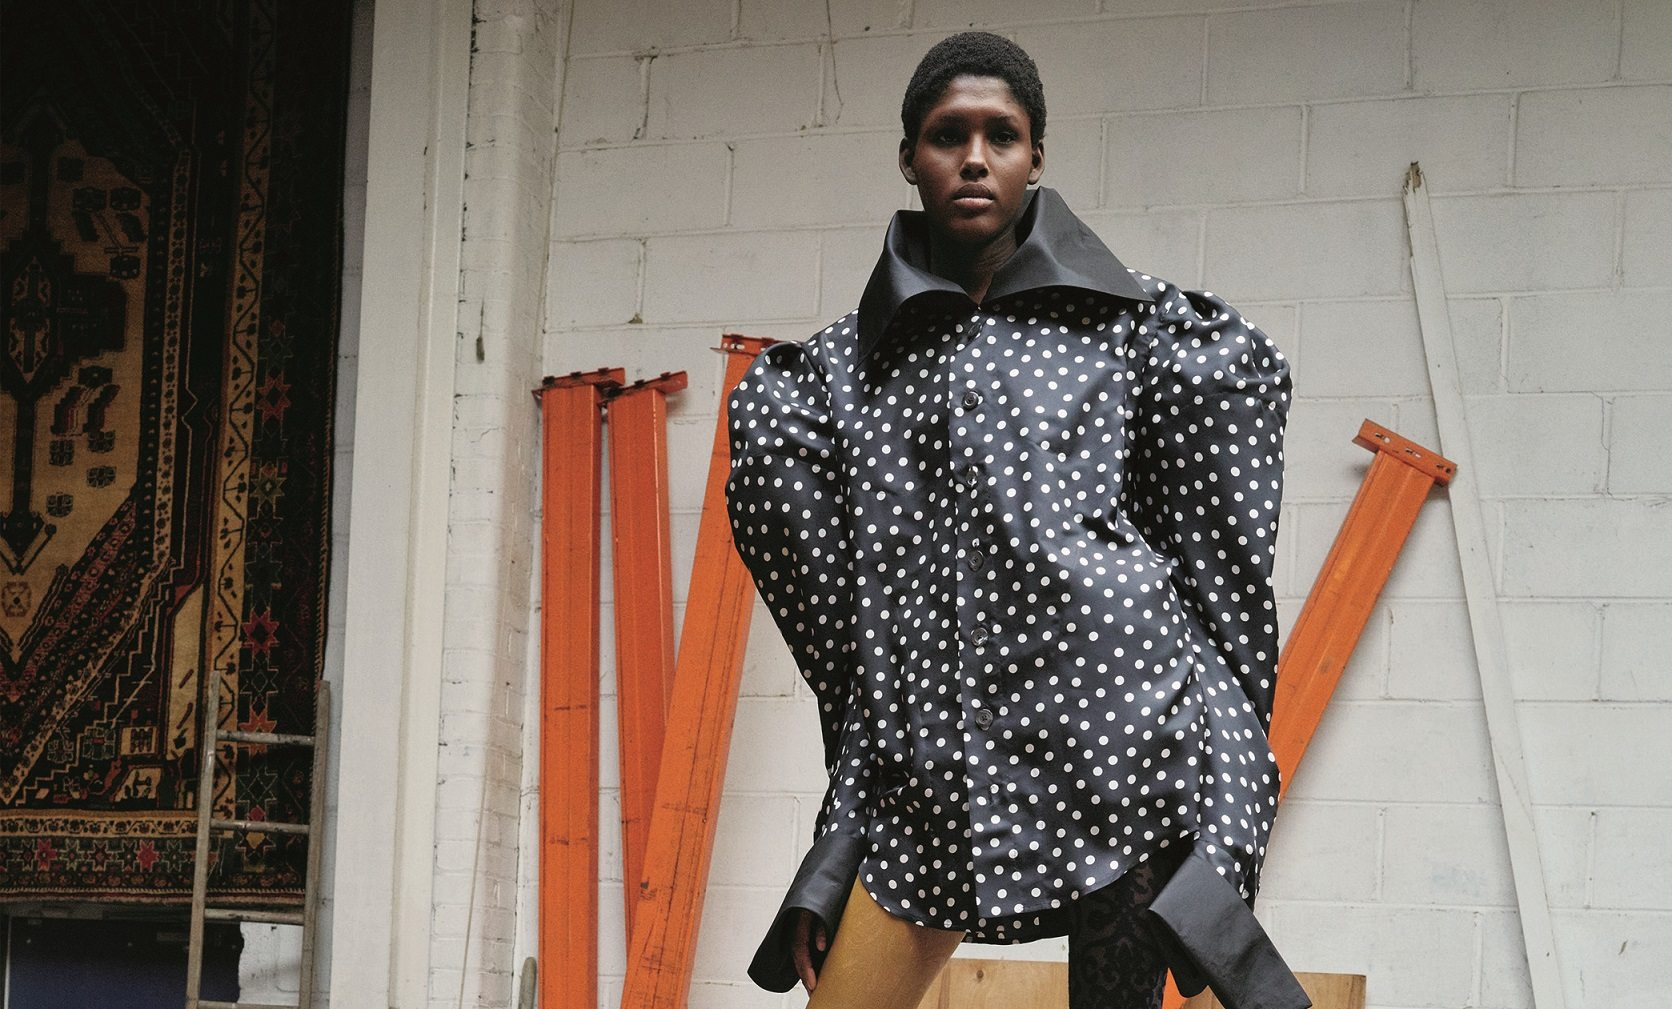 ADIDAS BY STELLA MCCARTNEY FALL 2016 COLLECTION